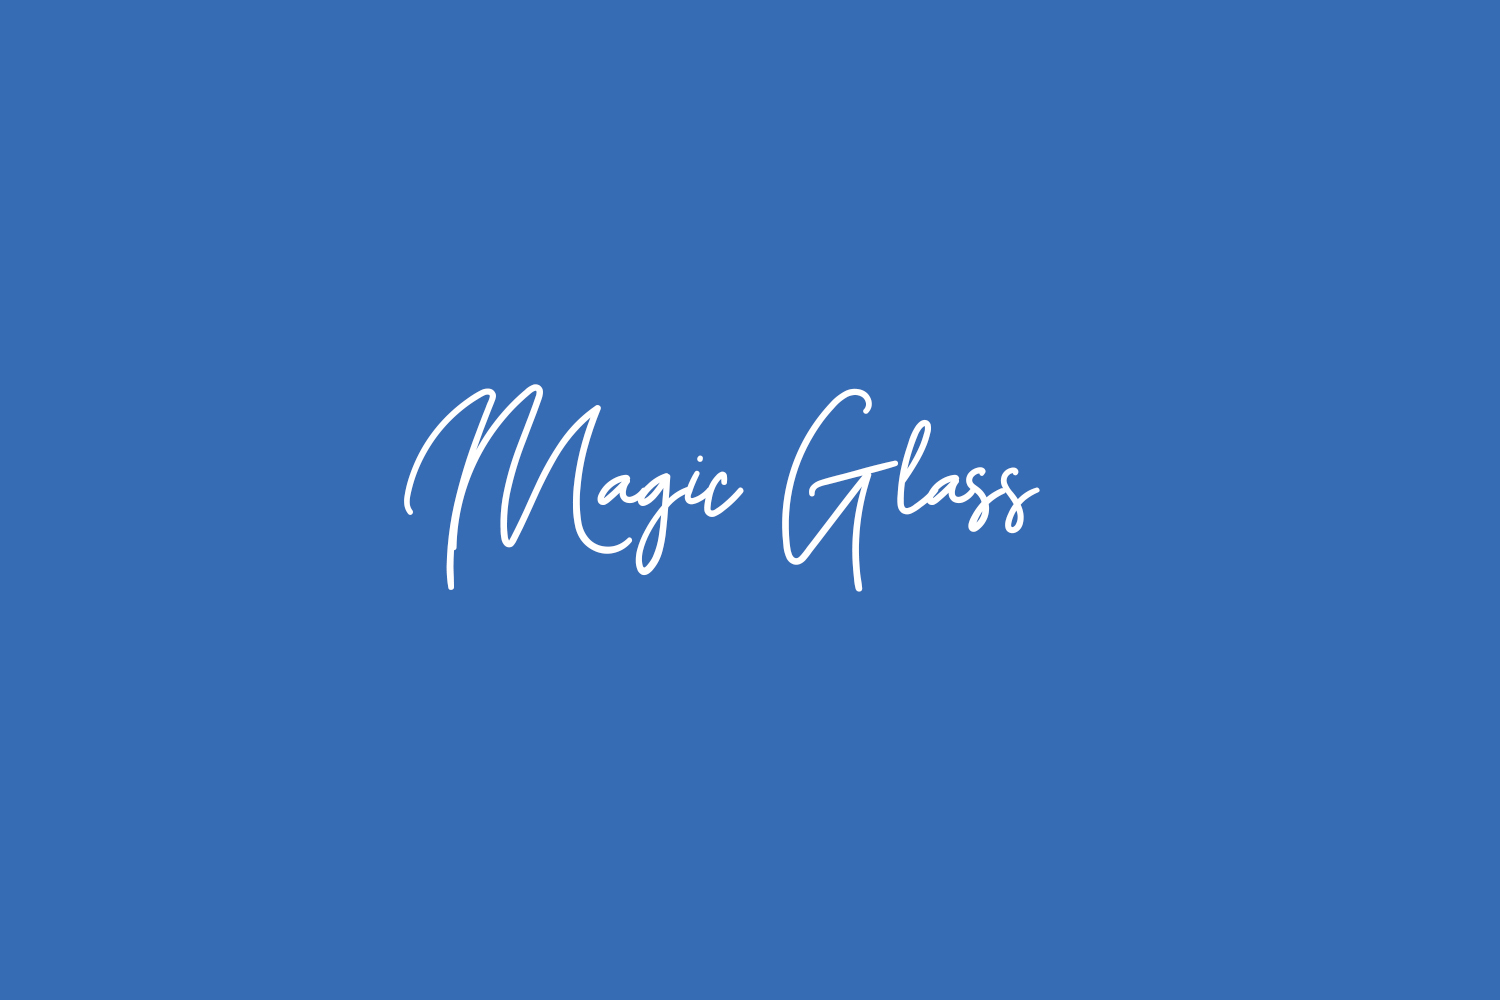 Magic Glass Free Font